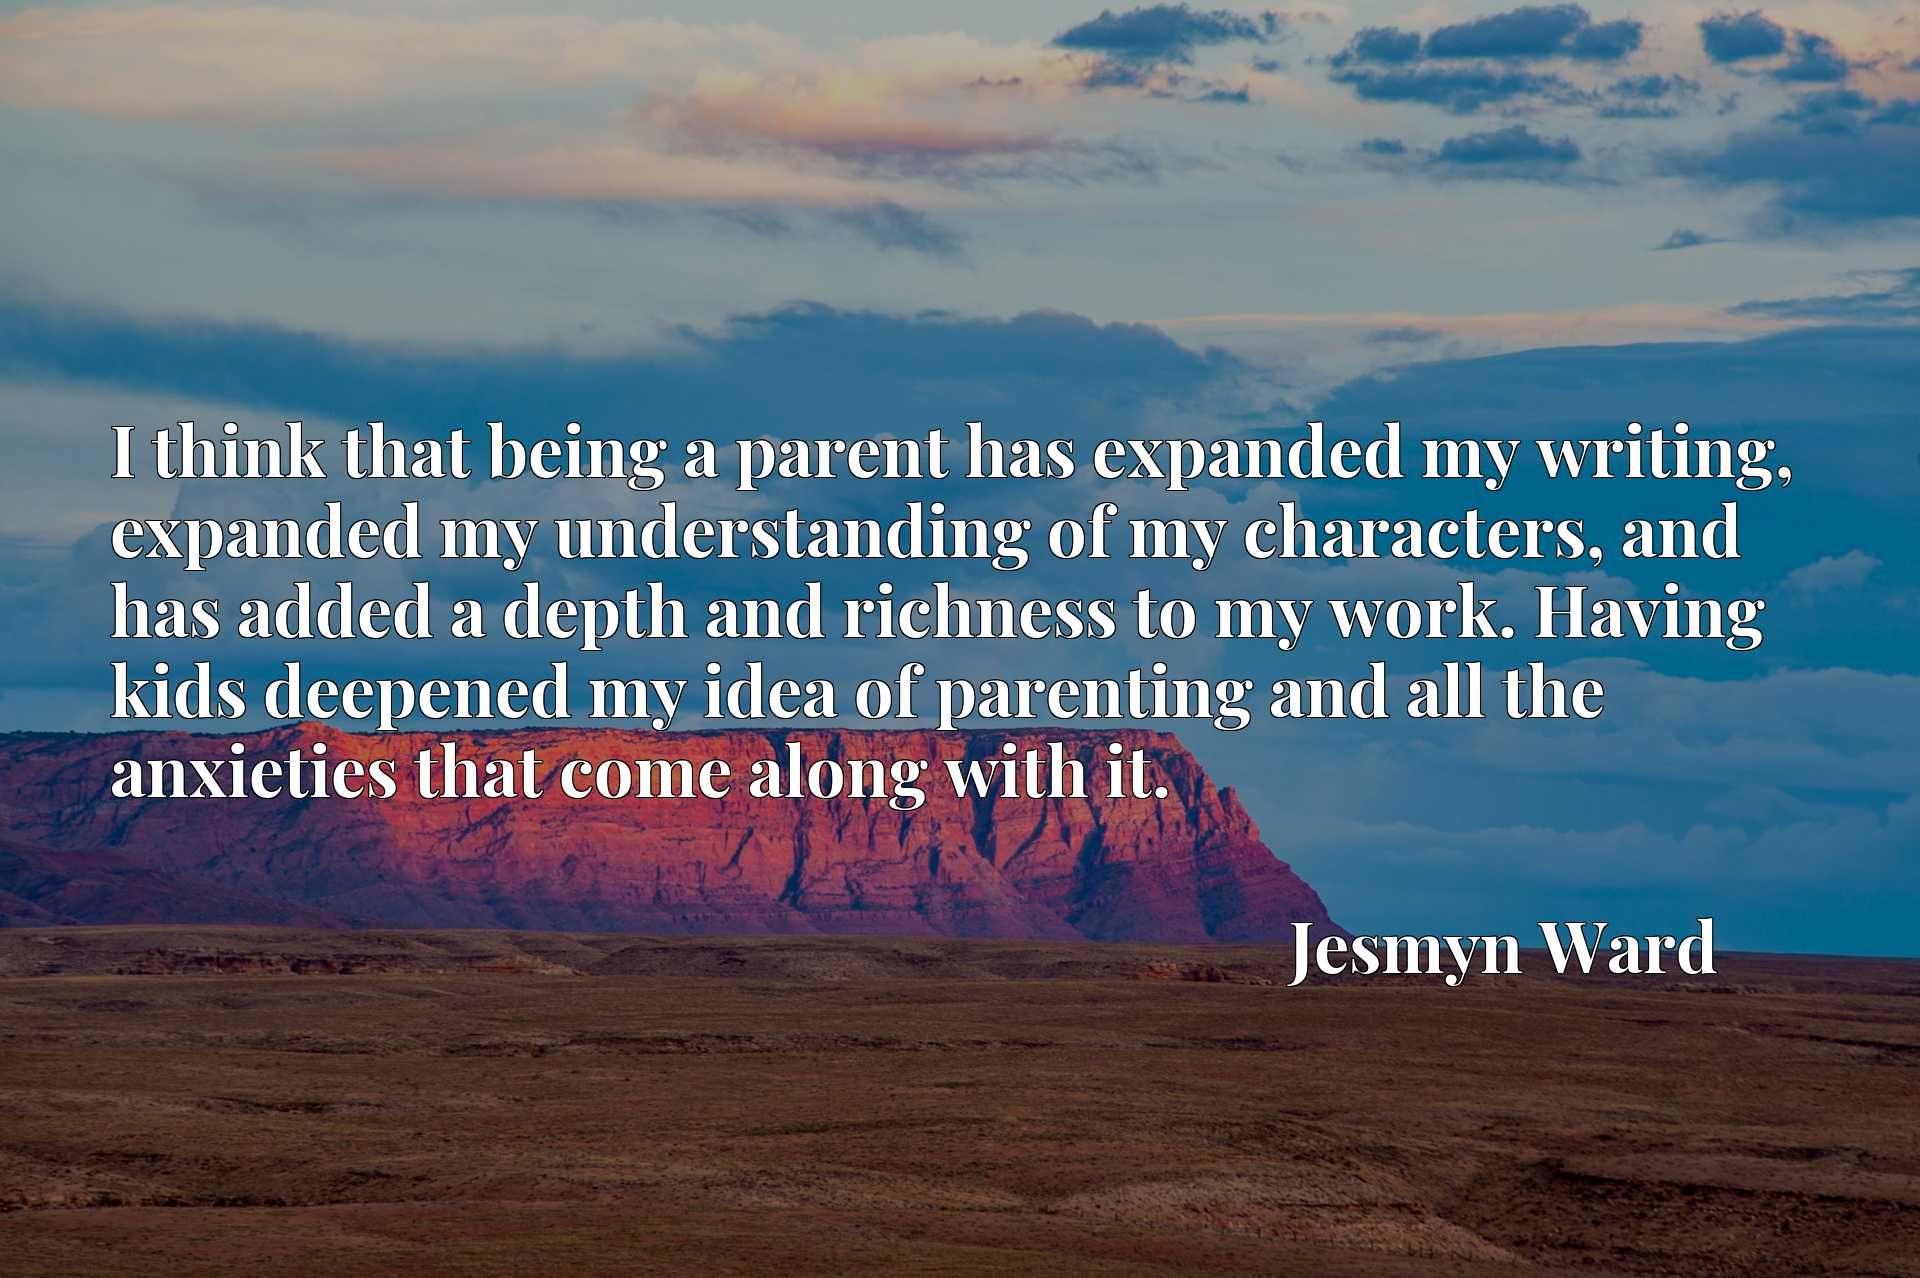 I think that being a parent has expanded my writing, expanded my understanding of my characters, and has added a depth and richness to my work. Having kids deepened my idea of parenting and all the anxieties that come along with it.